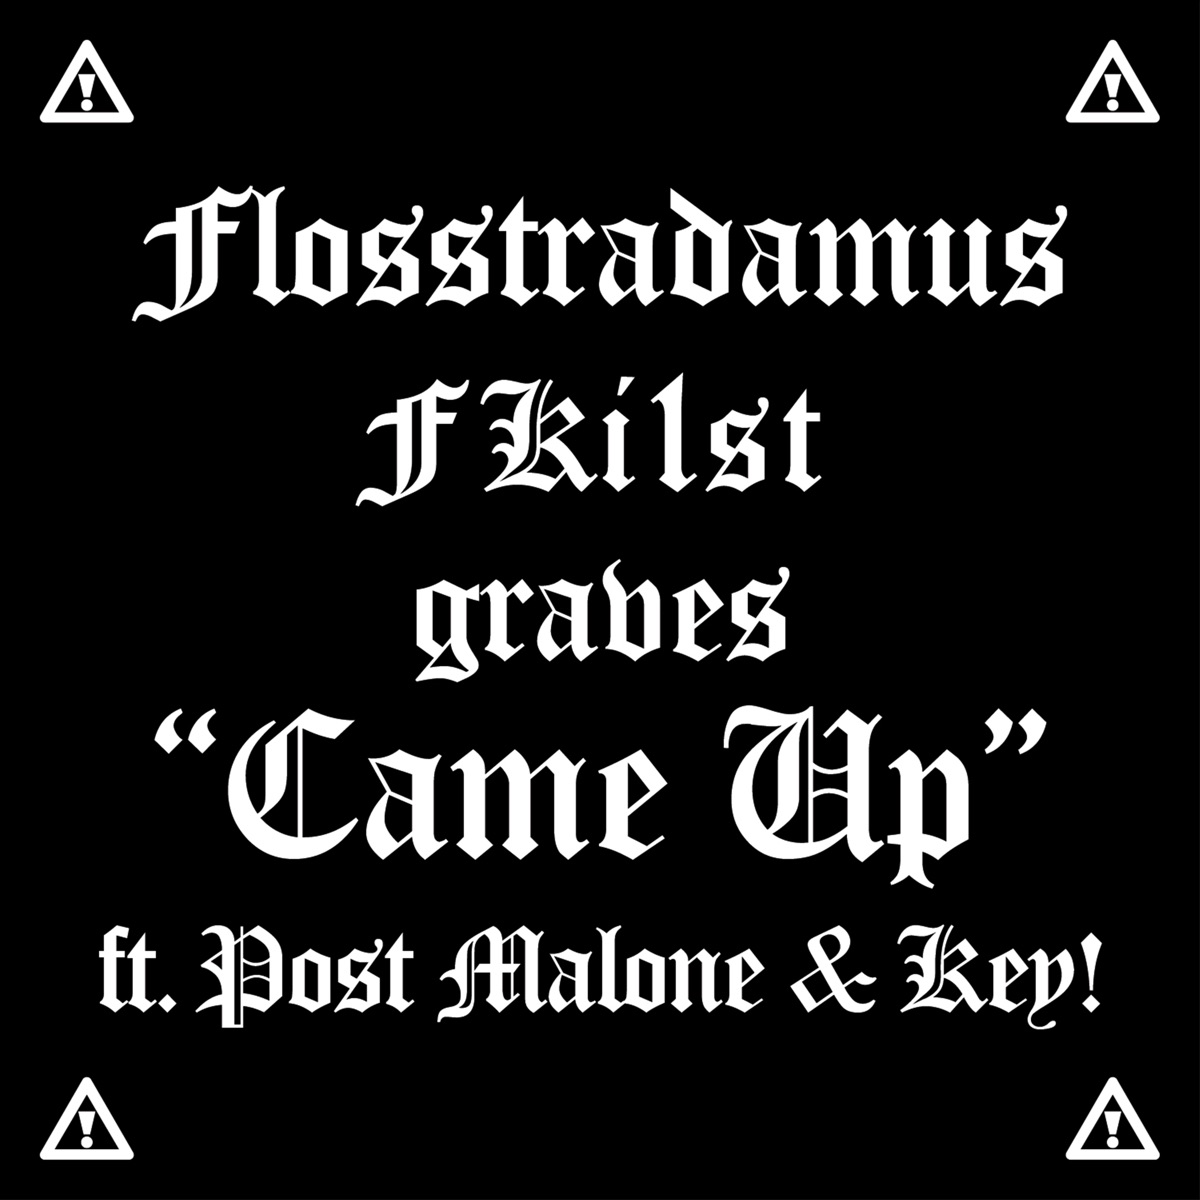 Came Up feat Post Malone  Key - Single Flosstradamus FKi1st  graves CD cover